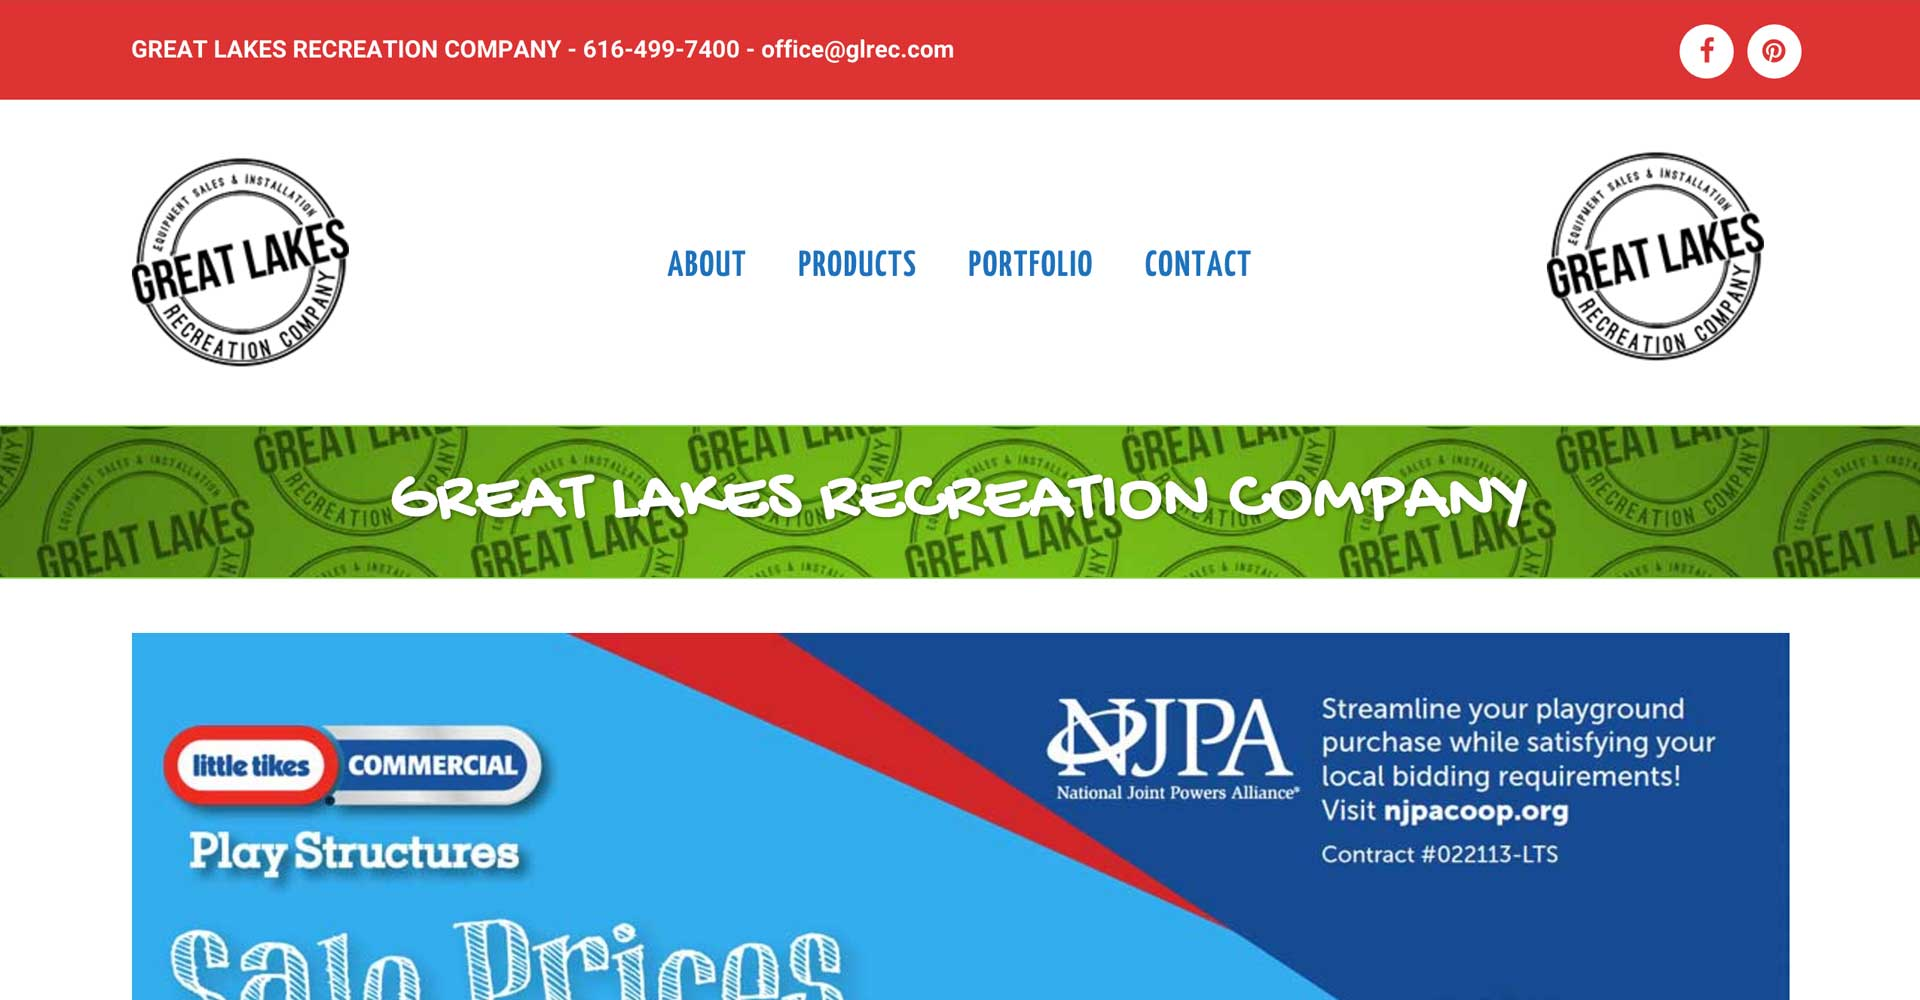 Great Lakes Recreation Company